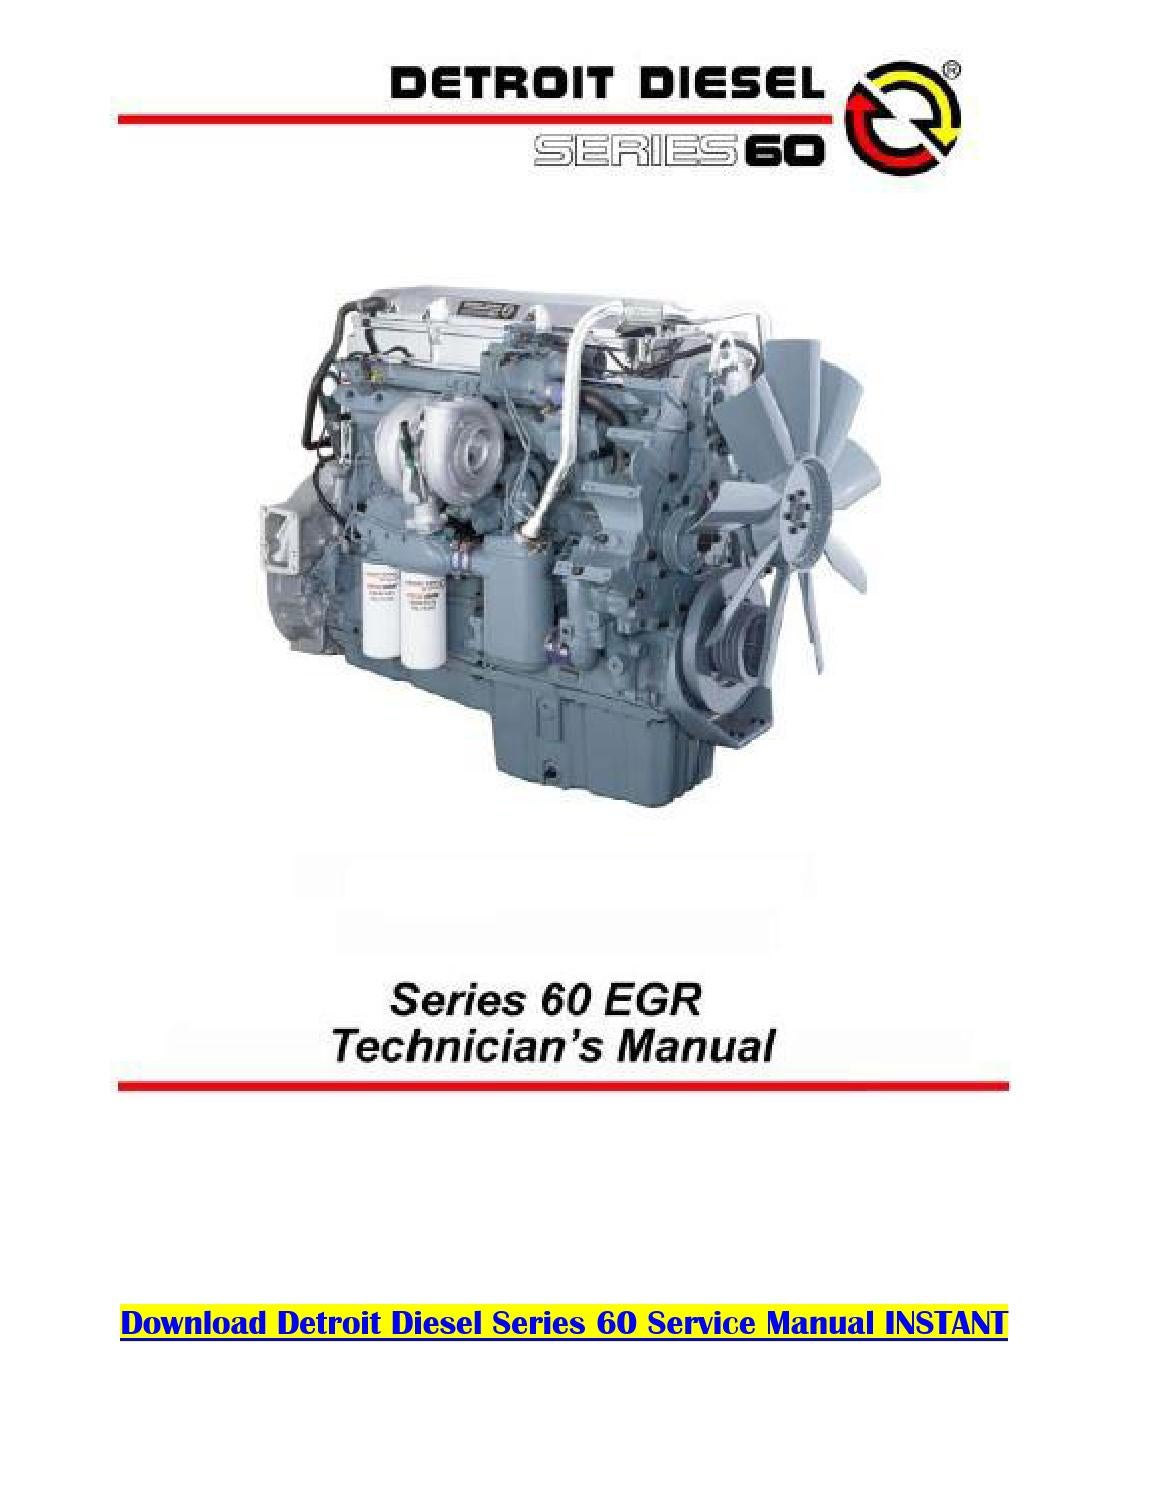 diesel engine manuals free download